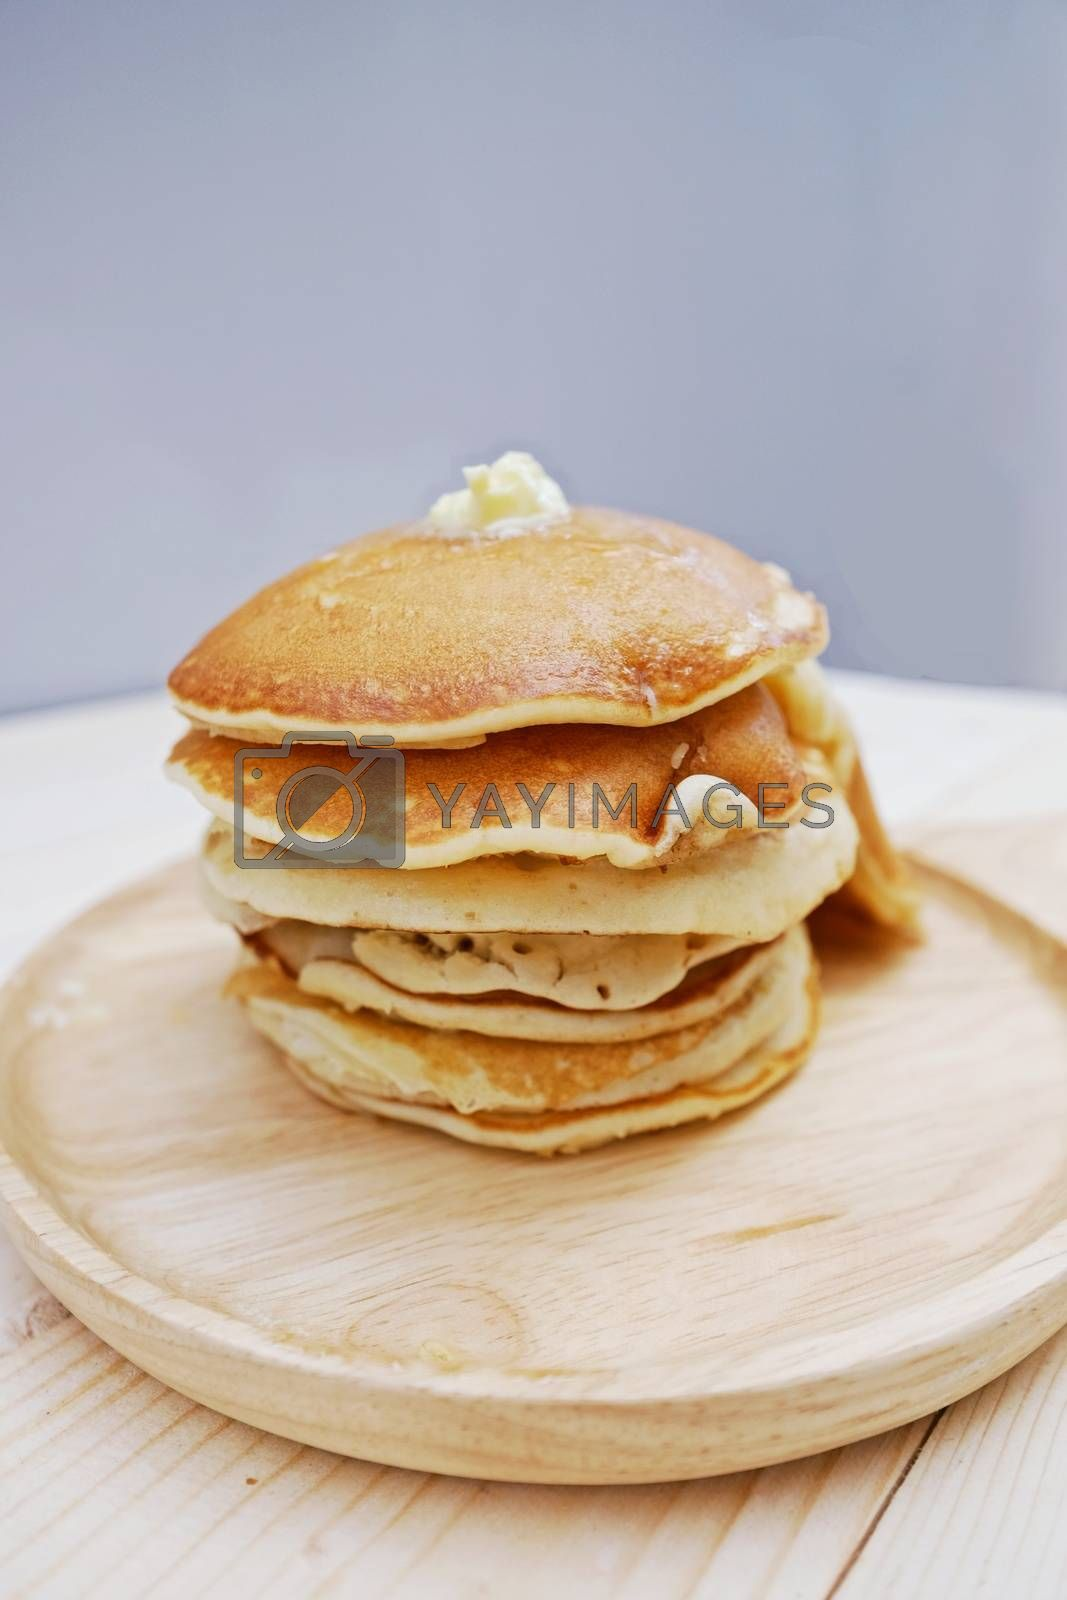 Pancakes  in dish on Table wood